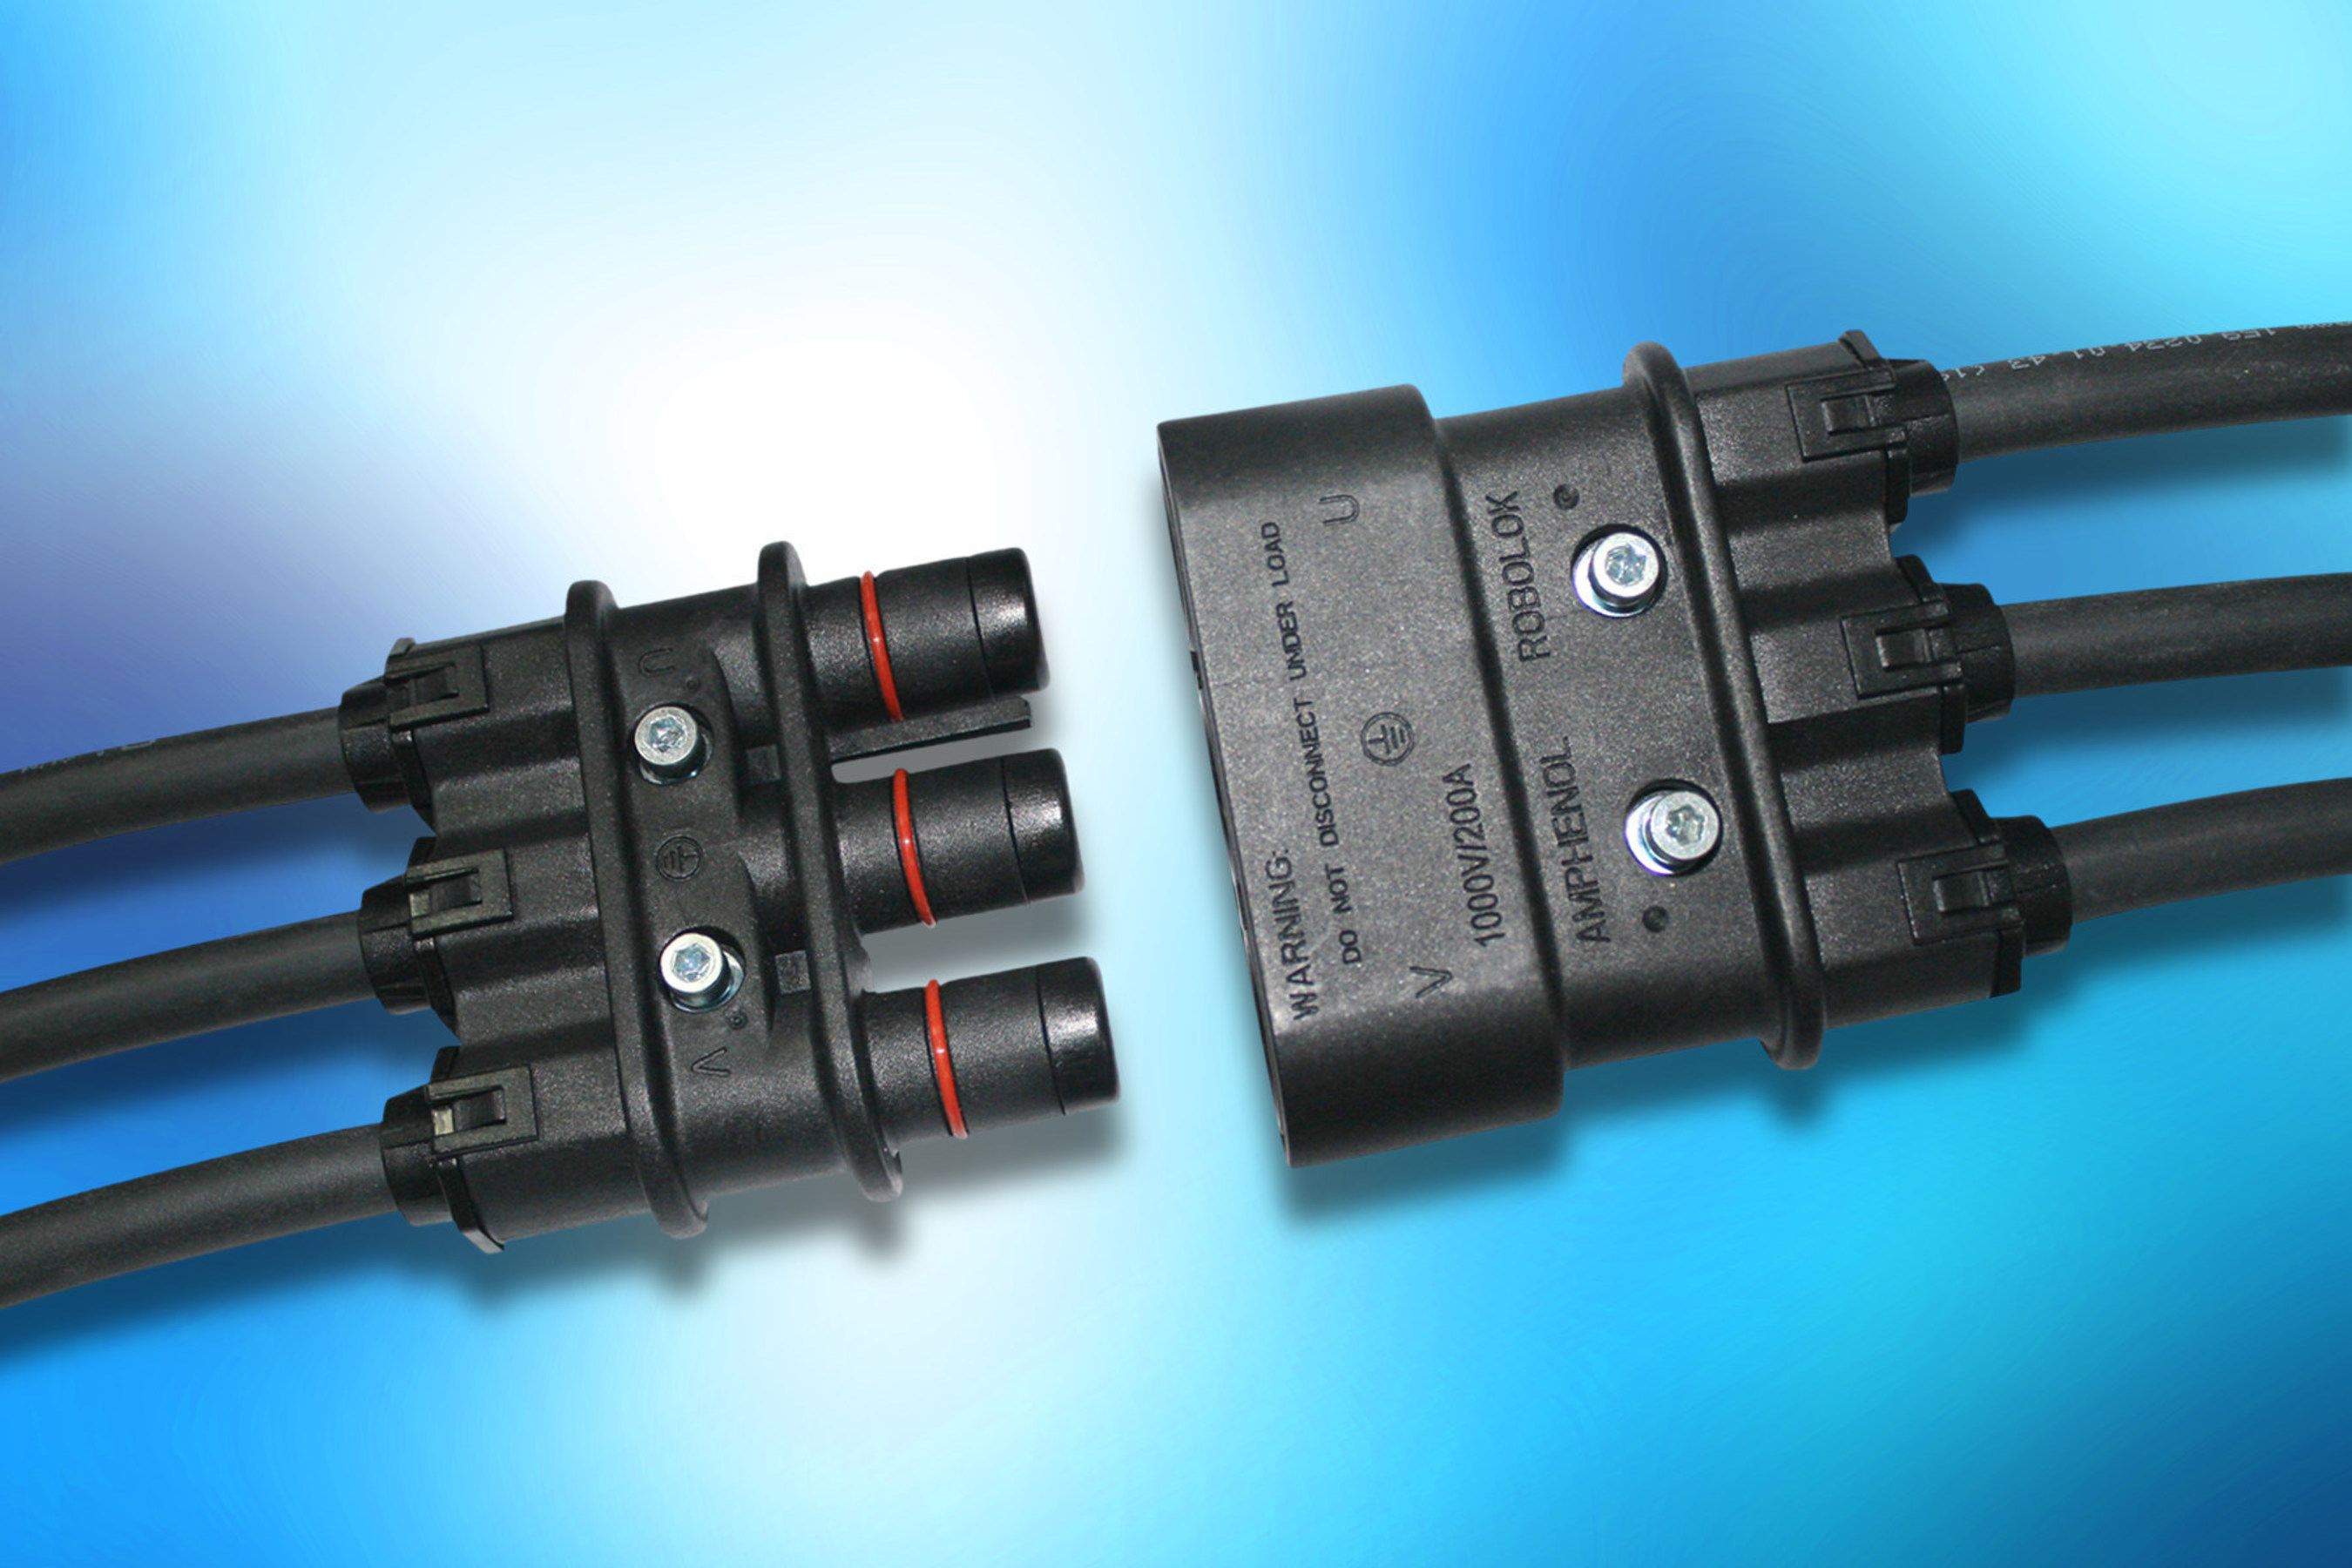 Primary circuit power connector from amphenol enables